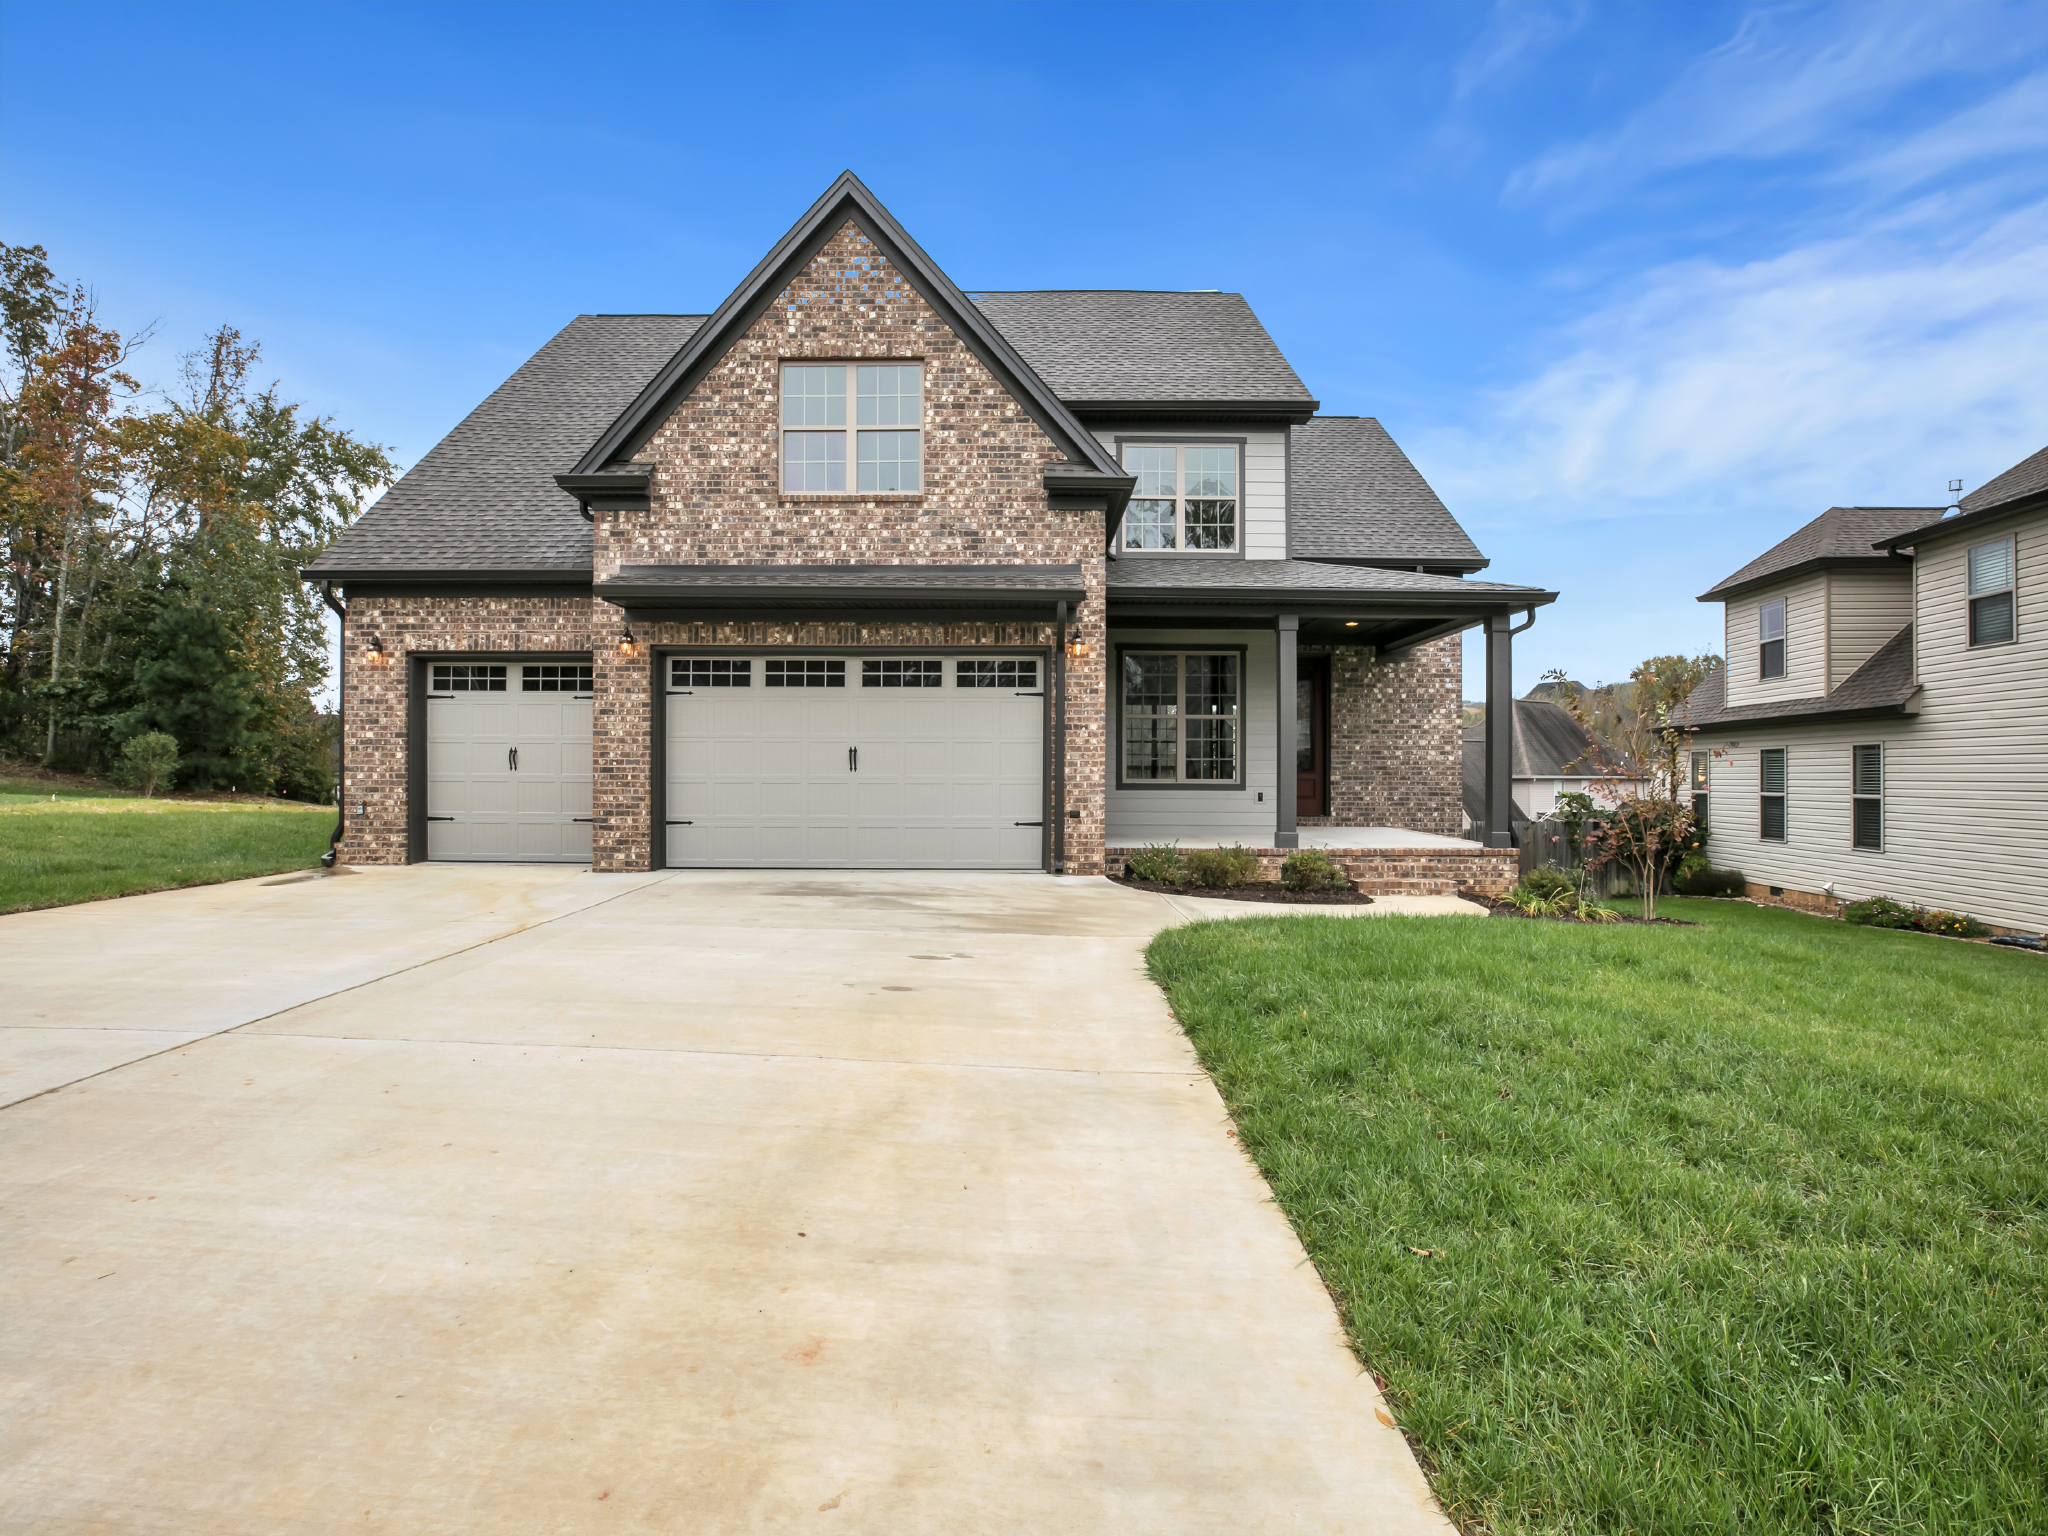 9919 Meadowstone Drive - Bentwood Cove Subdivision